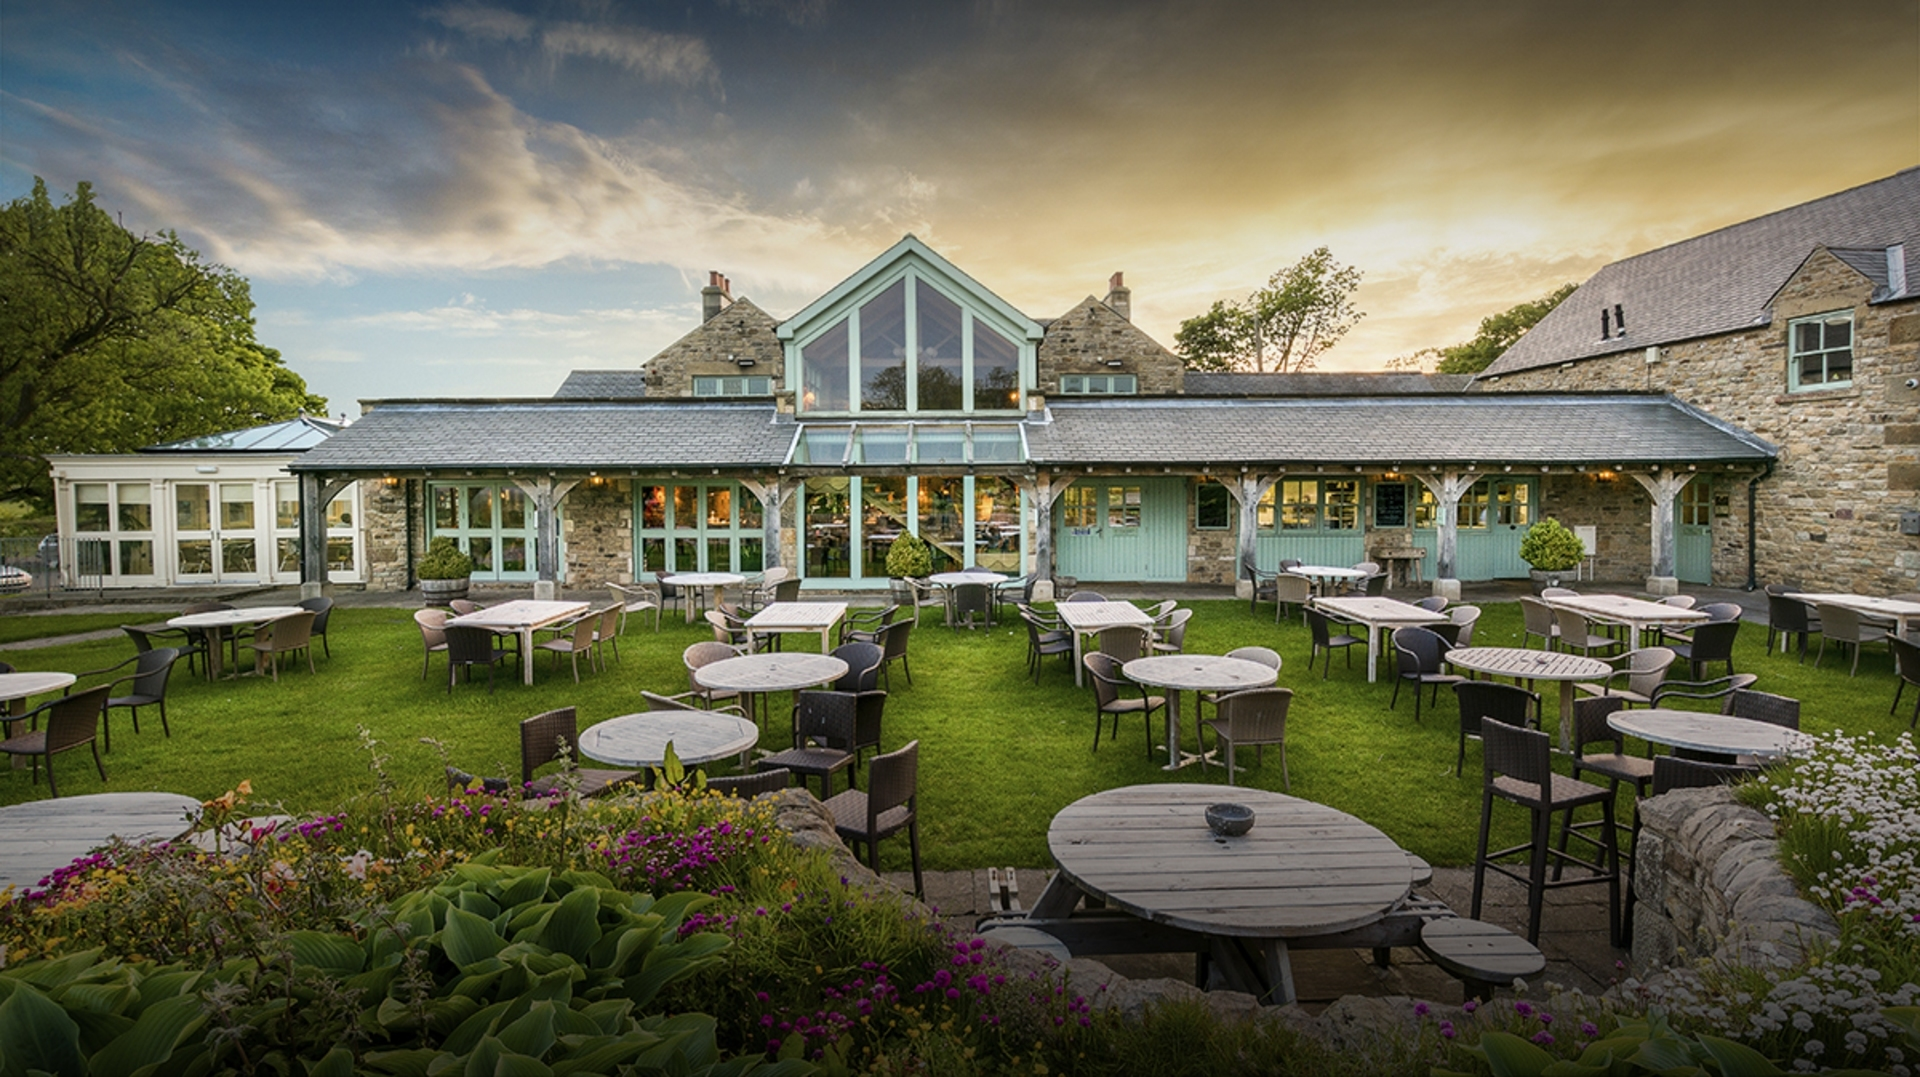 Luxury Boutique Hotel & Restaurant Near To Beamish Museum In County intended for Garden House Durham Sunday Lunch Menu